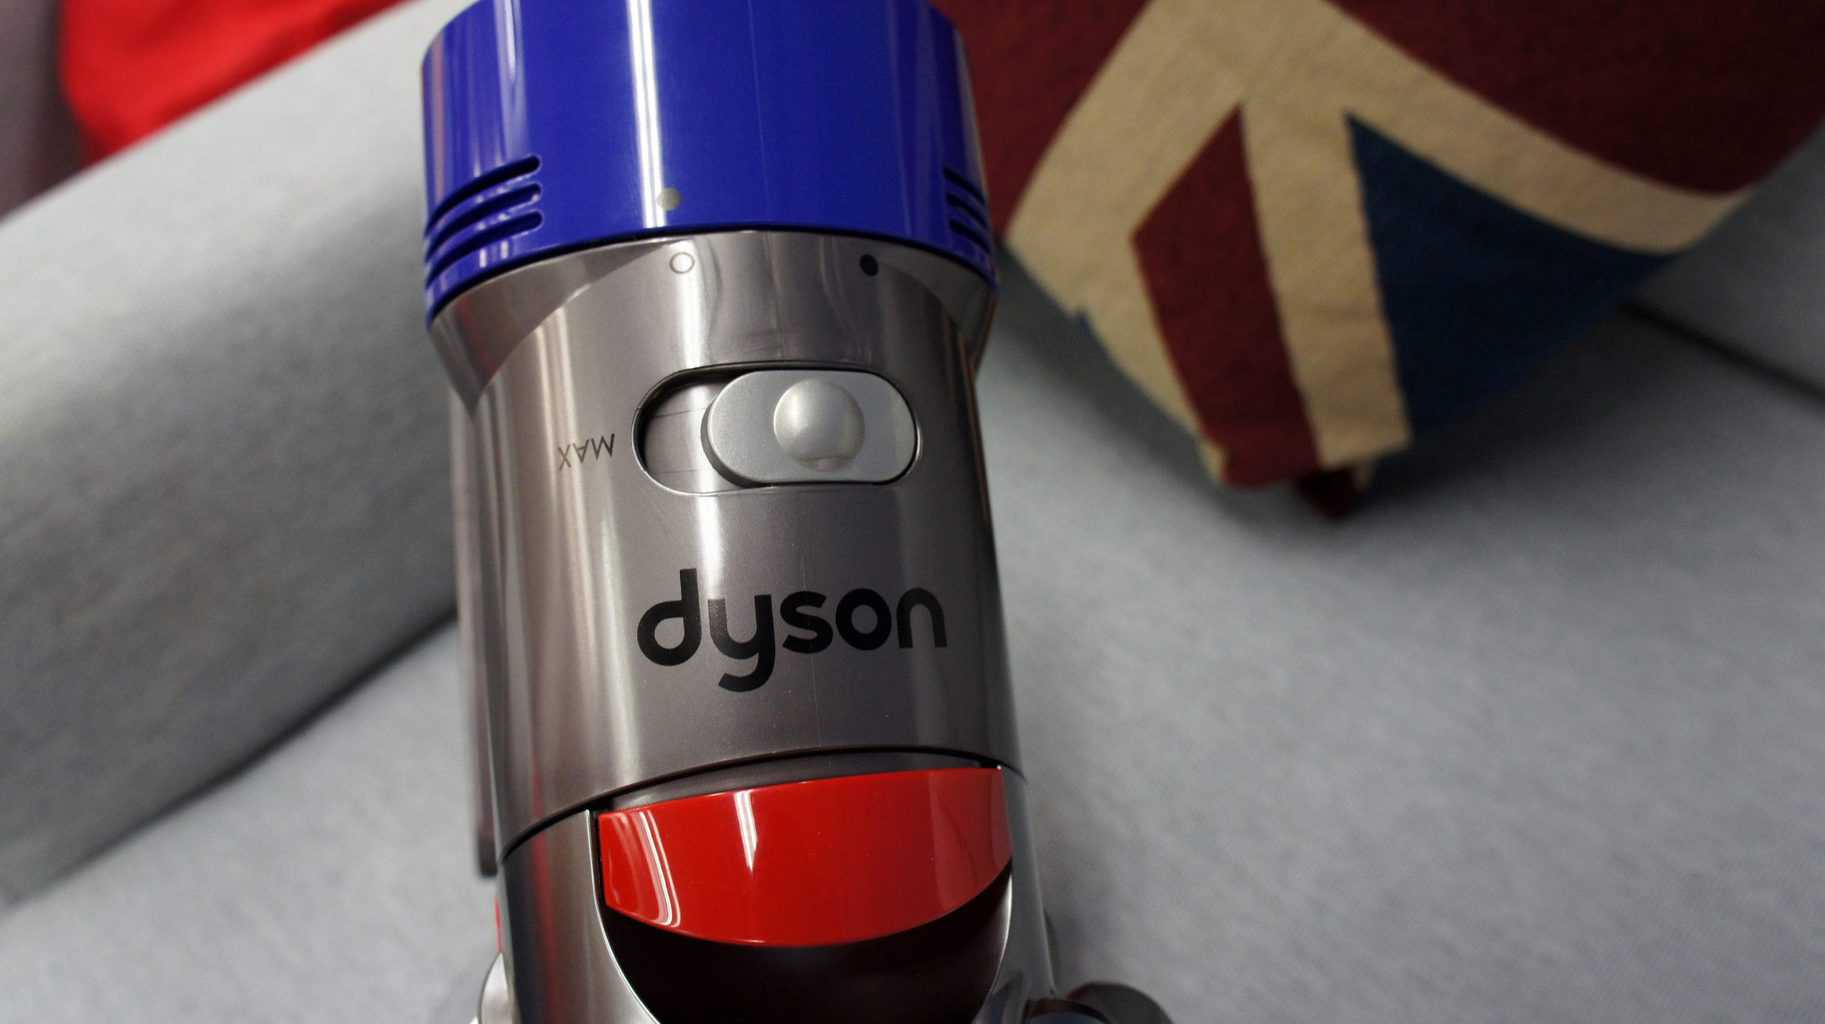 Close up of a dyson vacuum head